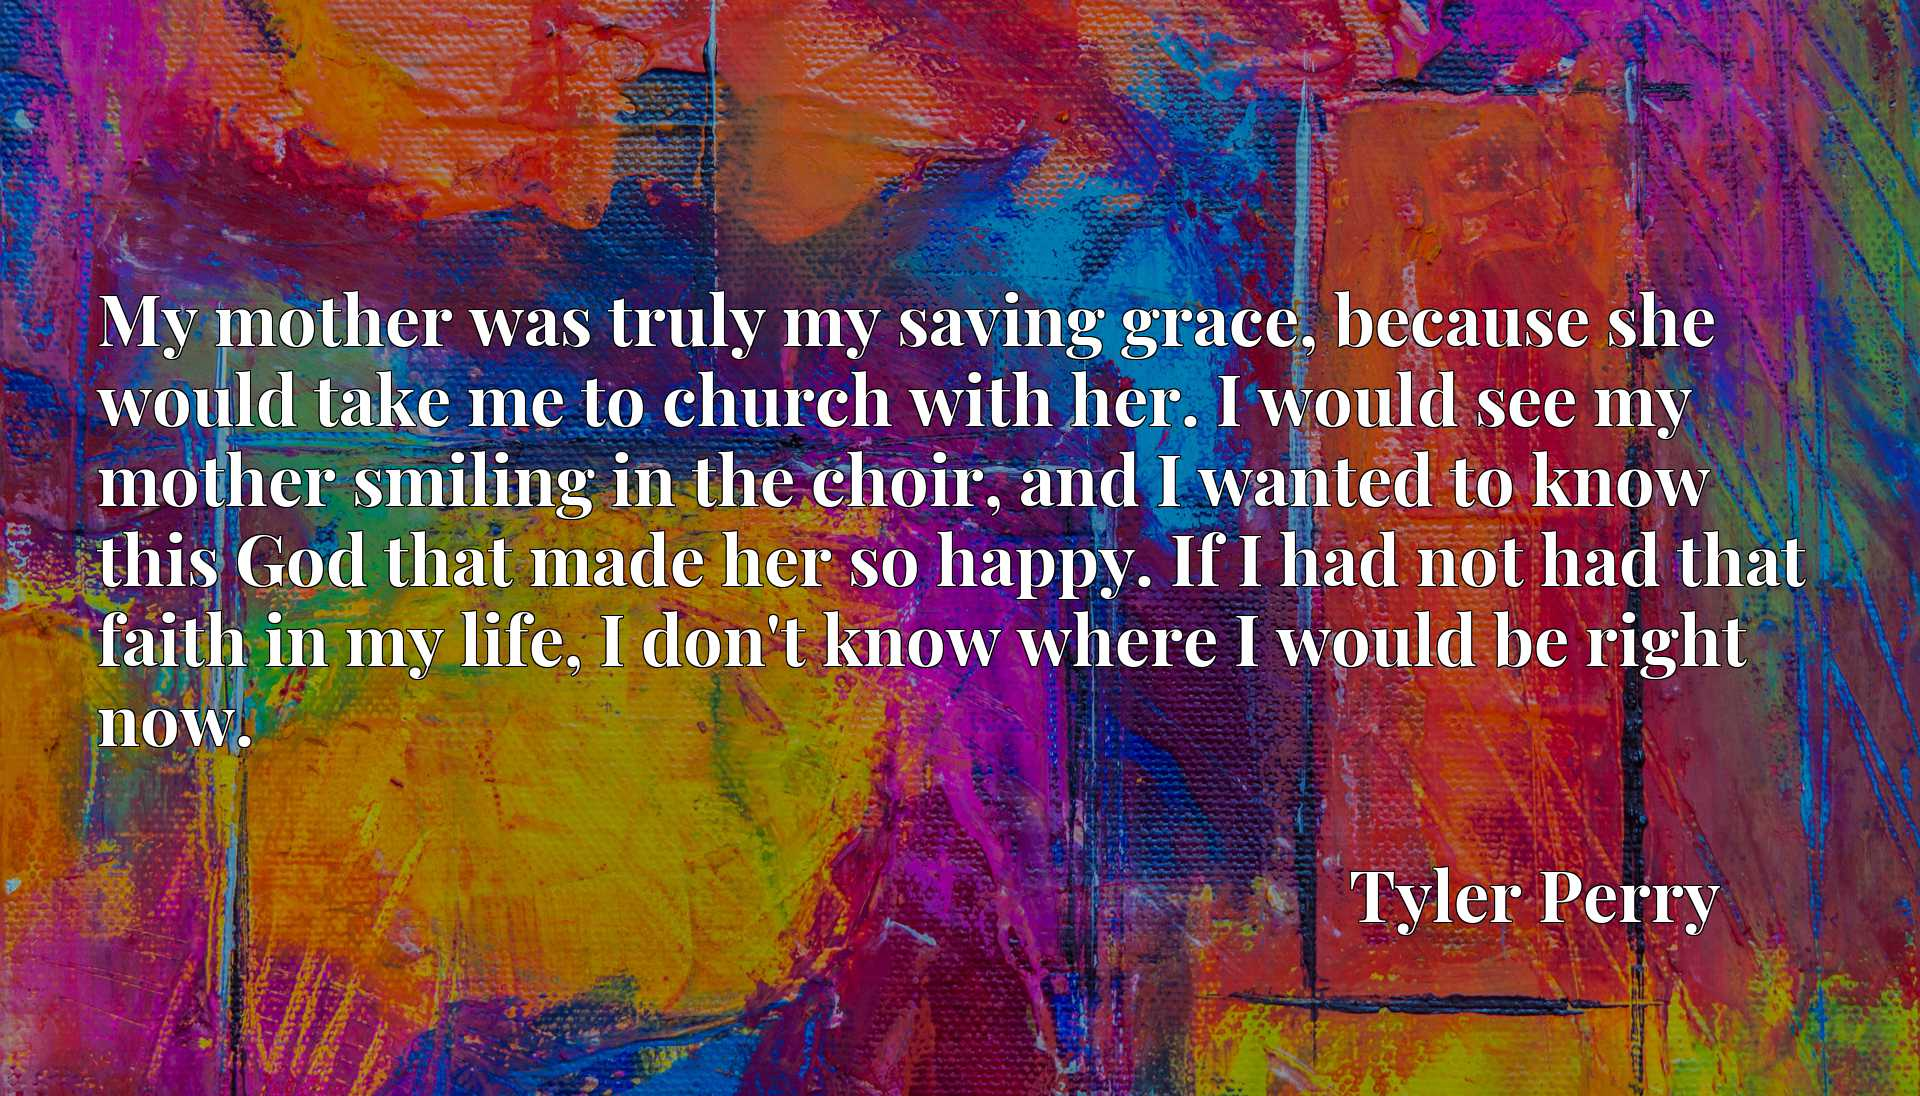 My mother was truly my saving grace, because she would take me to church with her. I would see my mother smiling in the choir, and I wanted to know this God that made her so happy. If I had not had that faith in my life, I don't know where I would be right now.